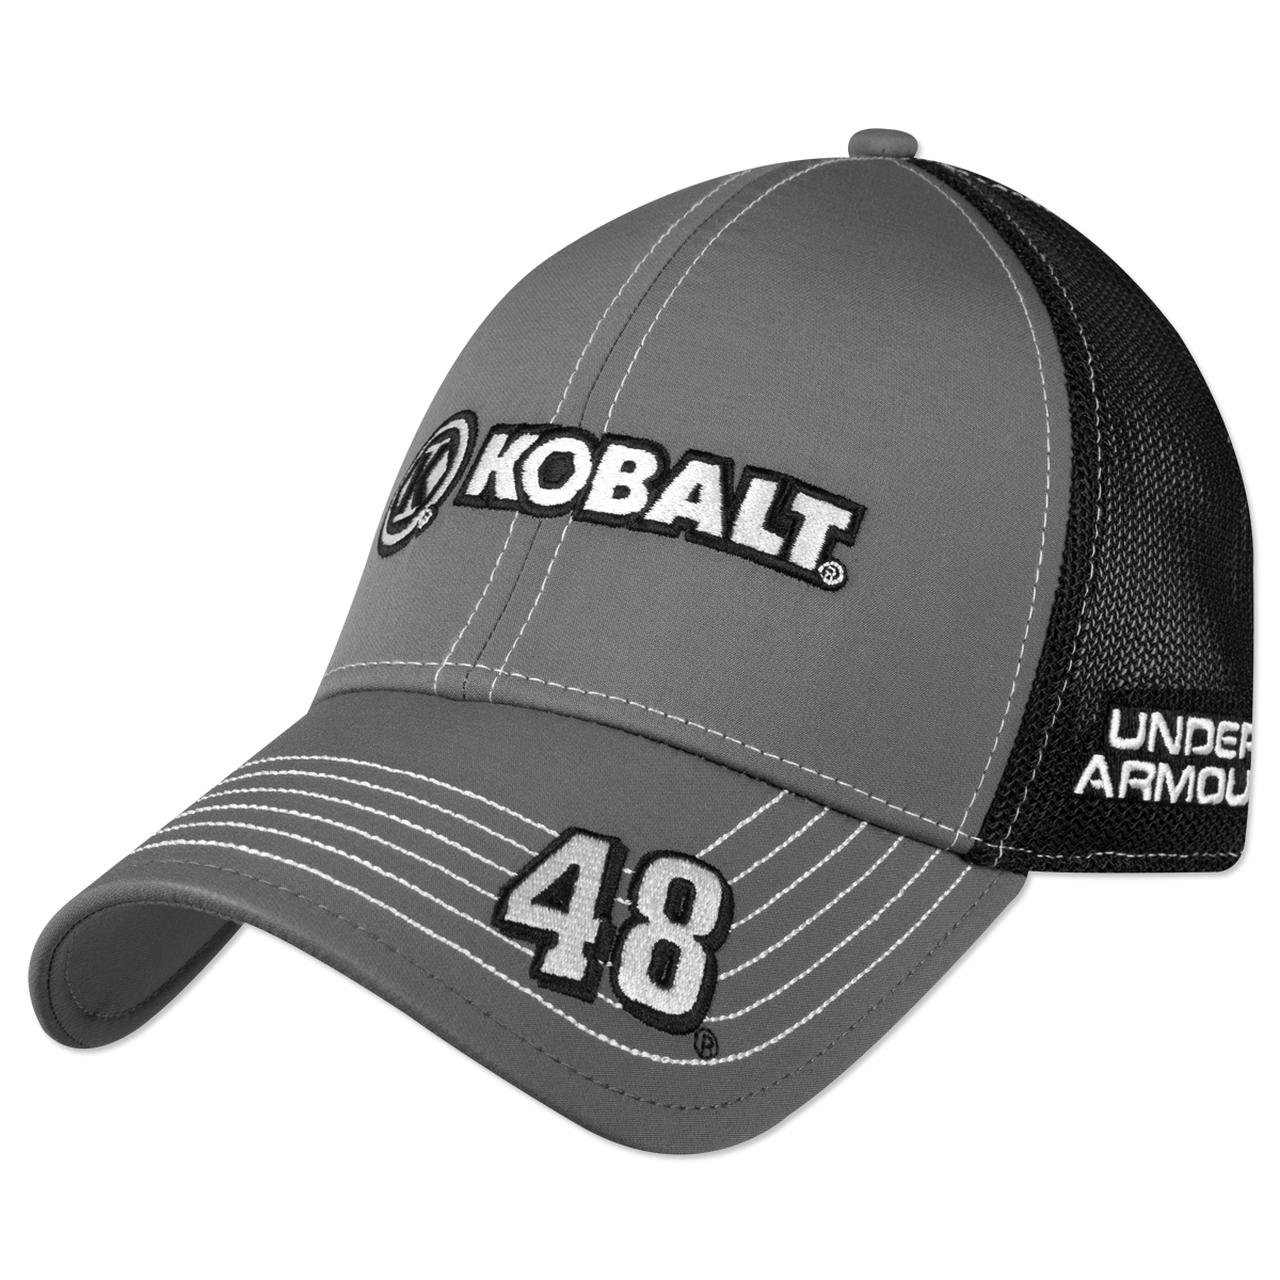 d24b7a45fa2 ... cheap jimmie johnson. 48 kobalt official hendrick motorsports team hat  by under armour 65a5a 561b6